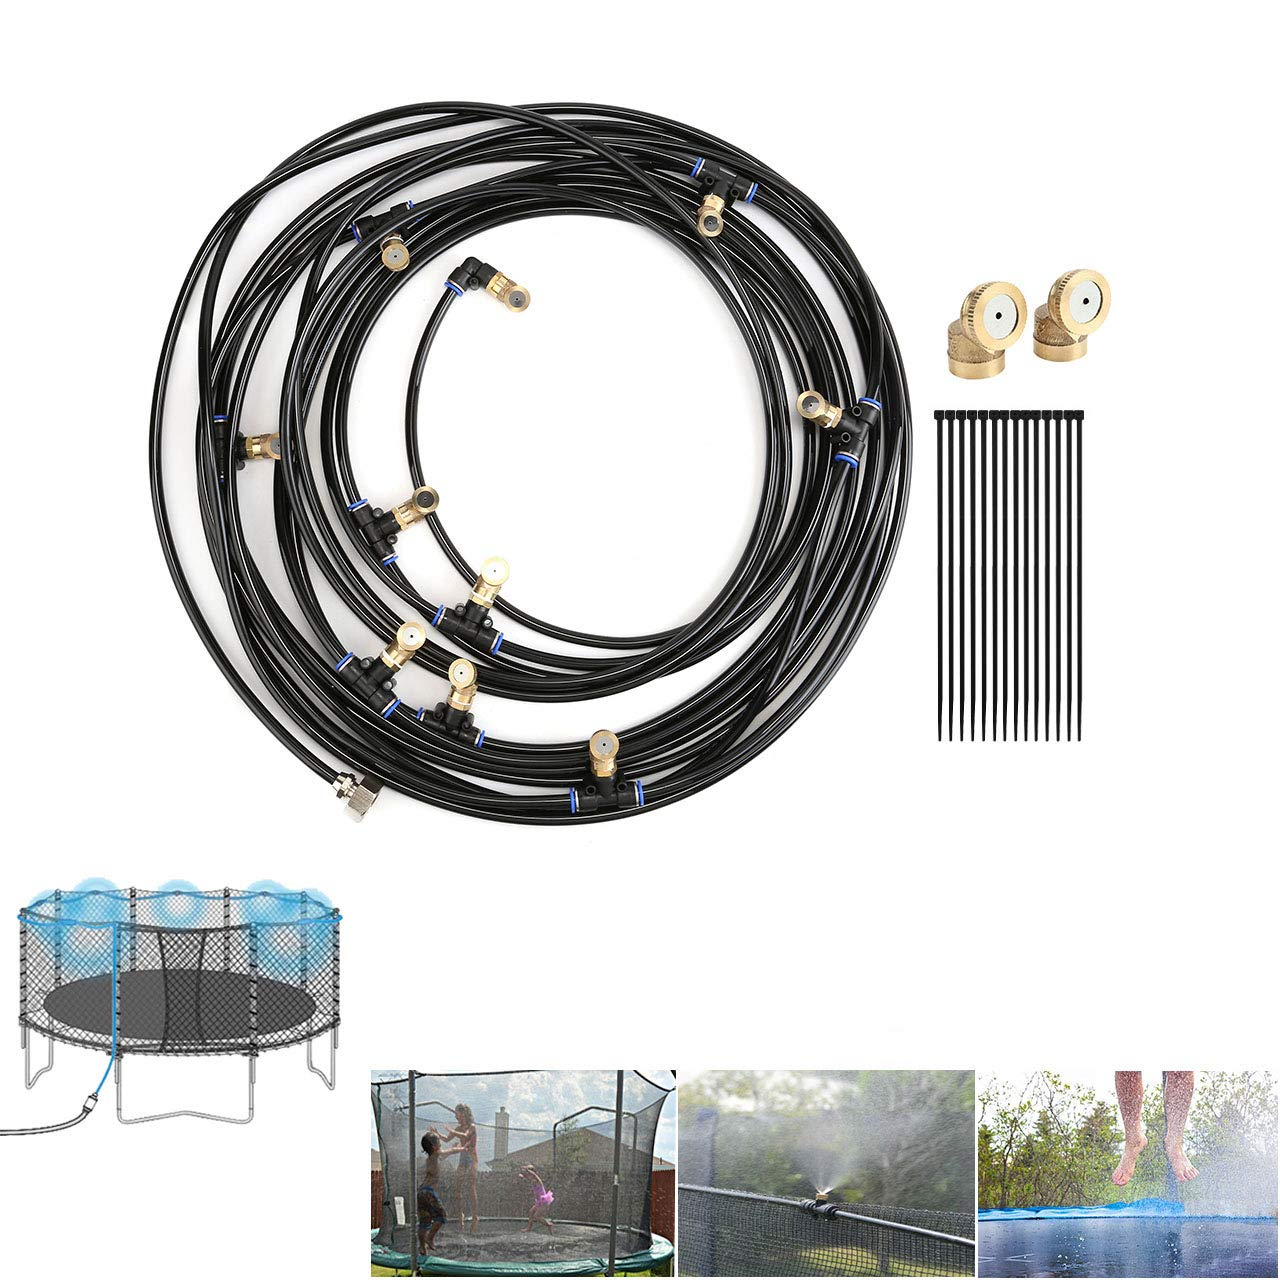 """CozyCabin Trampoline Misting Cooling System 49.2FT (15M) Misting Line (with G3/4"""" Connector) + 12 Brass Mist Nozzles, Pre-Assembled Garden Patio Mister Great for Summer Children Waterpark"""